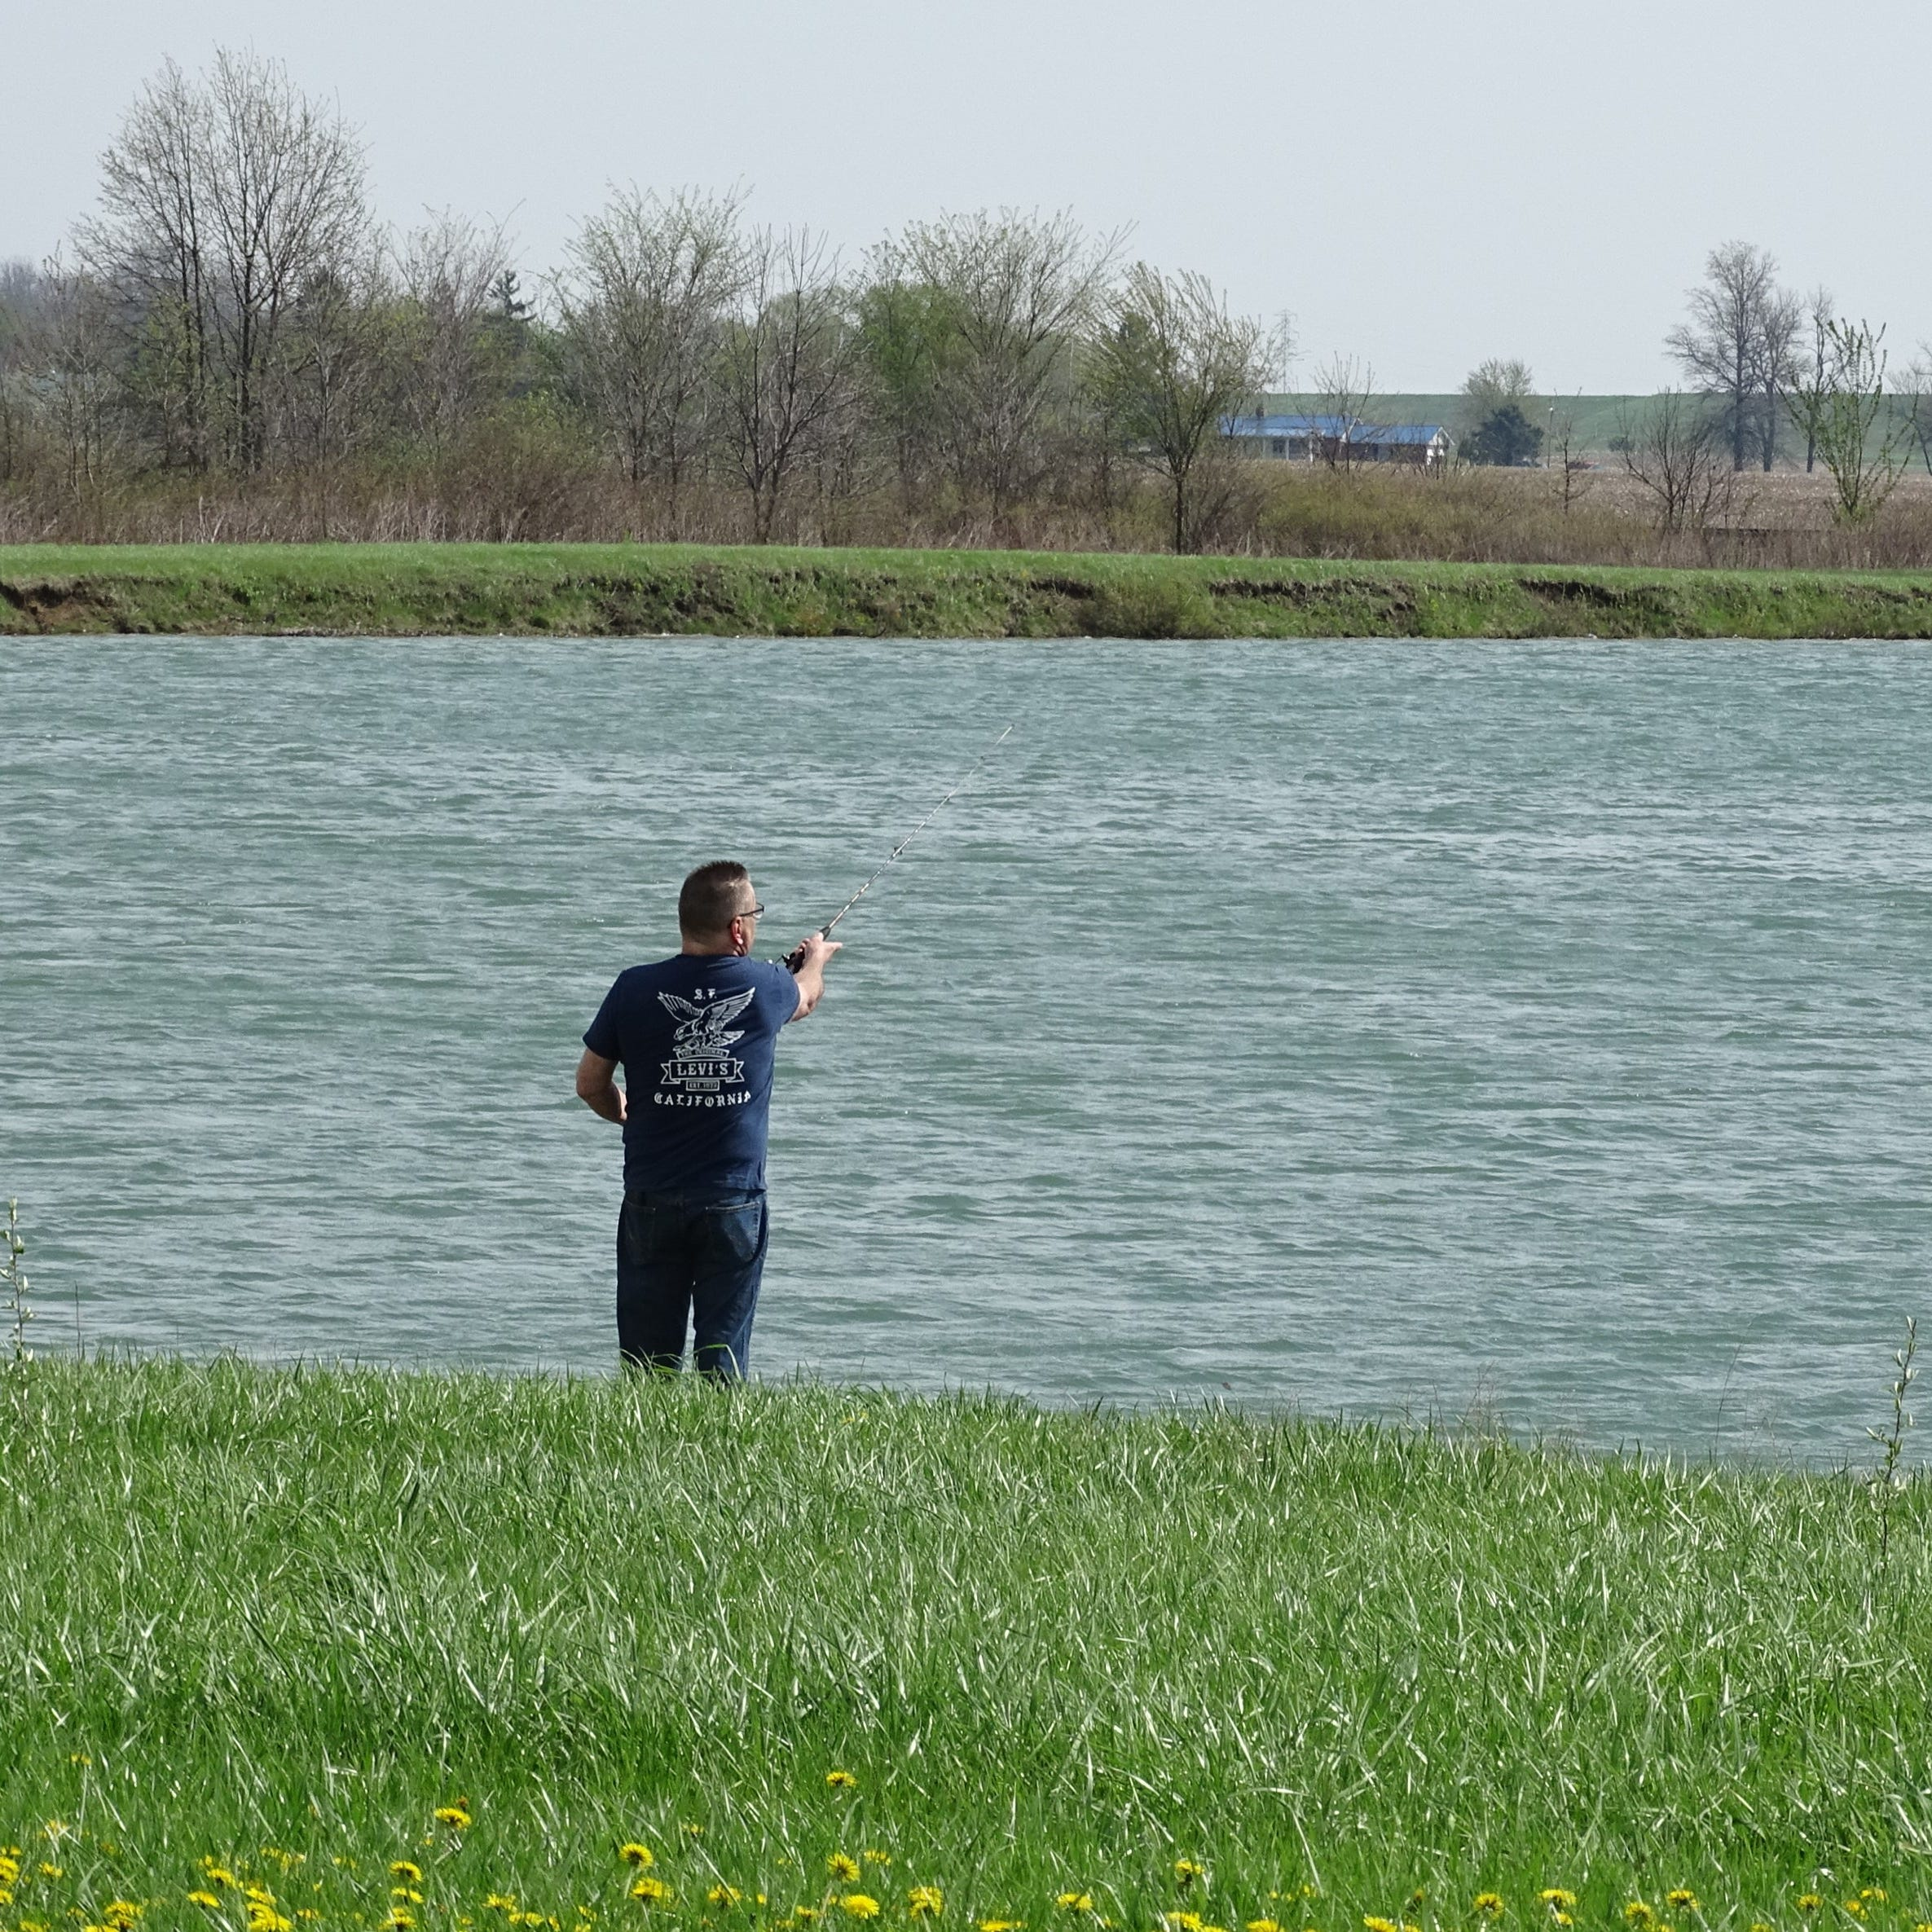 Take the bait: Bucyrus Rotary Club offers third annual fishing derby for kids